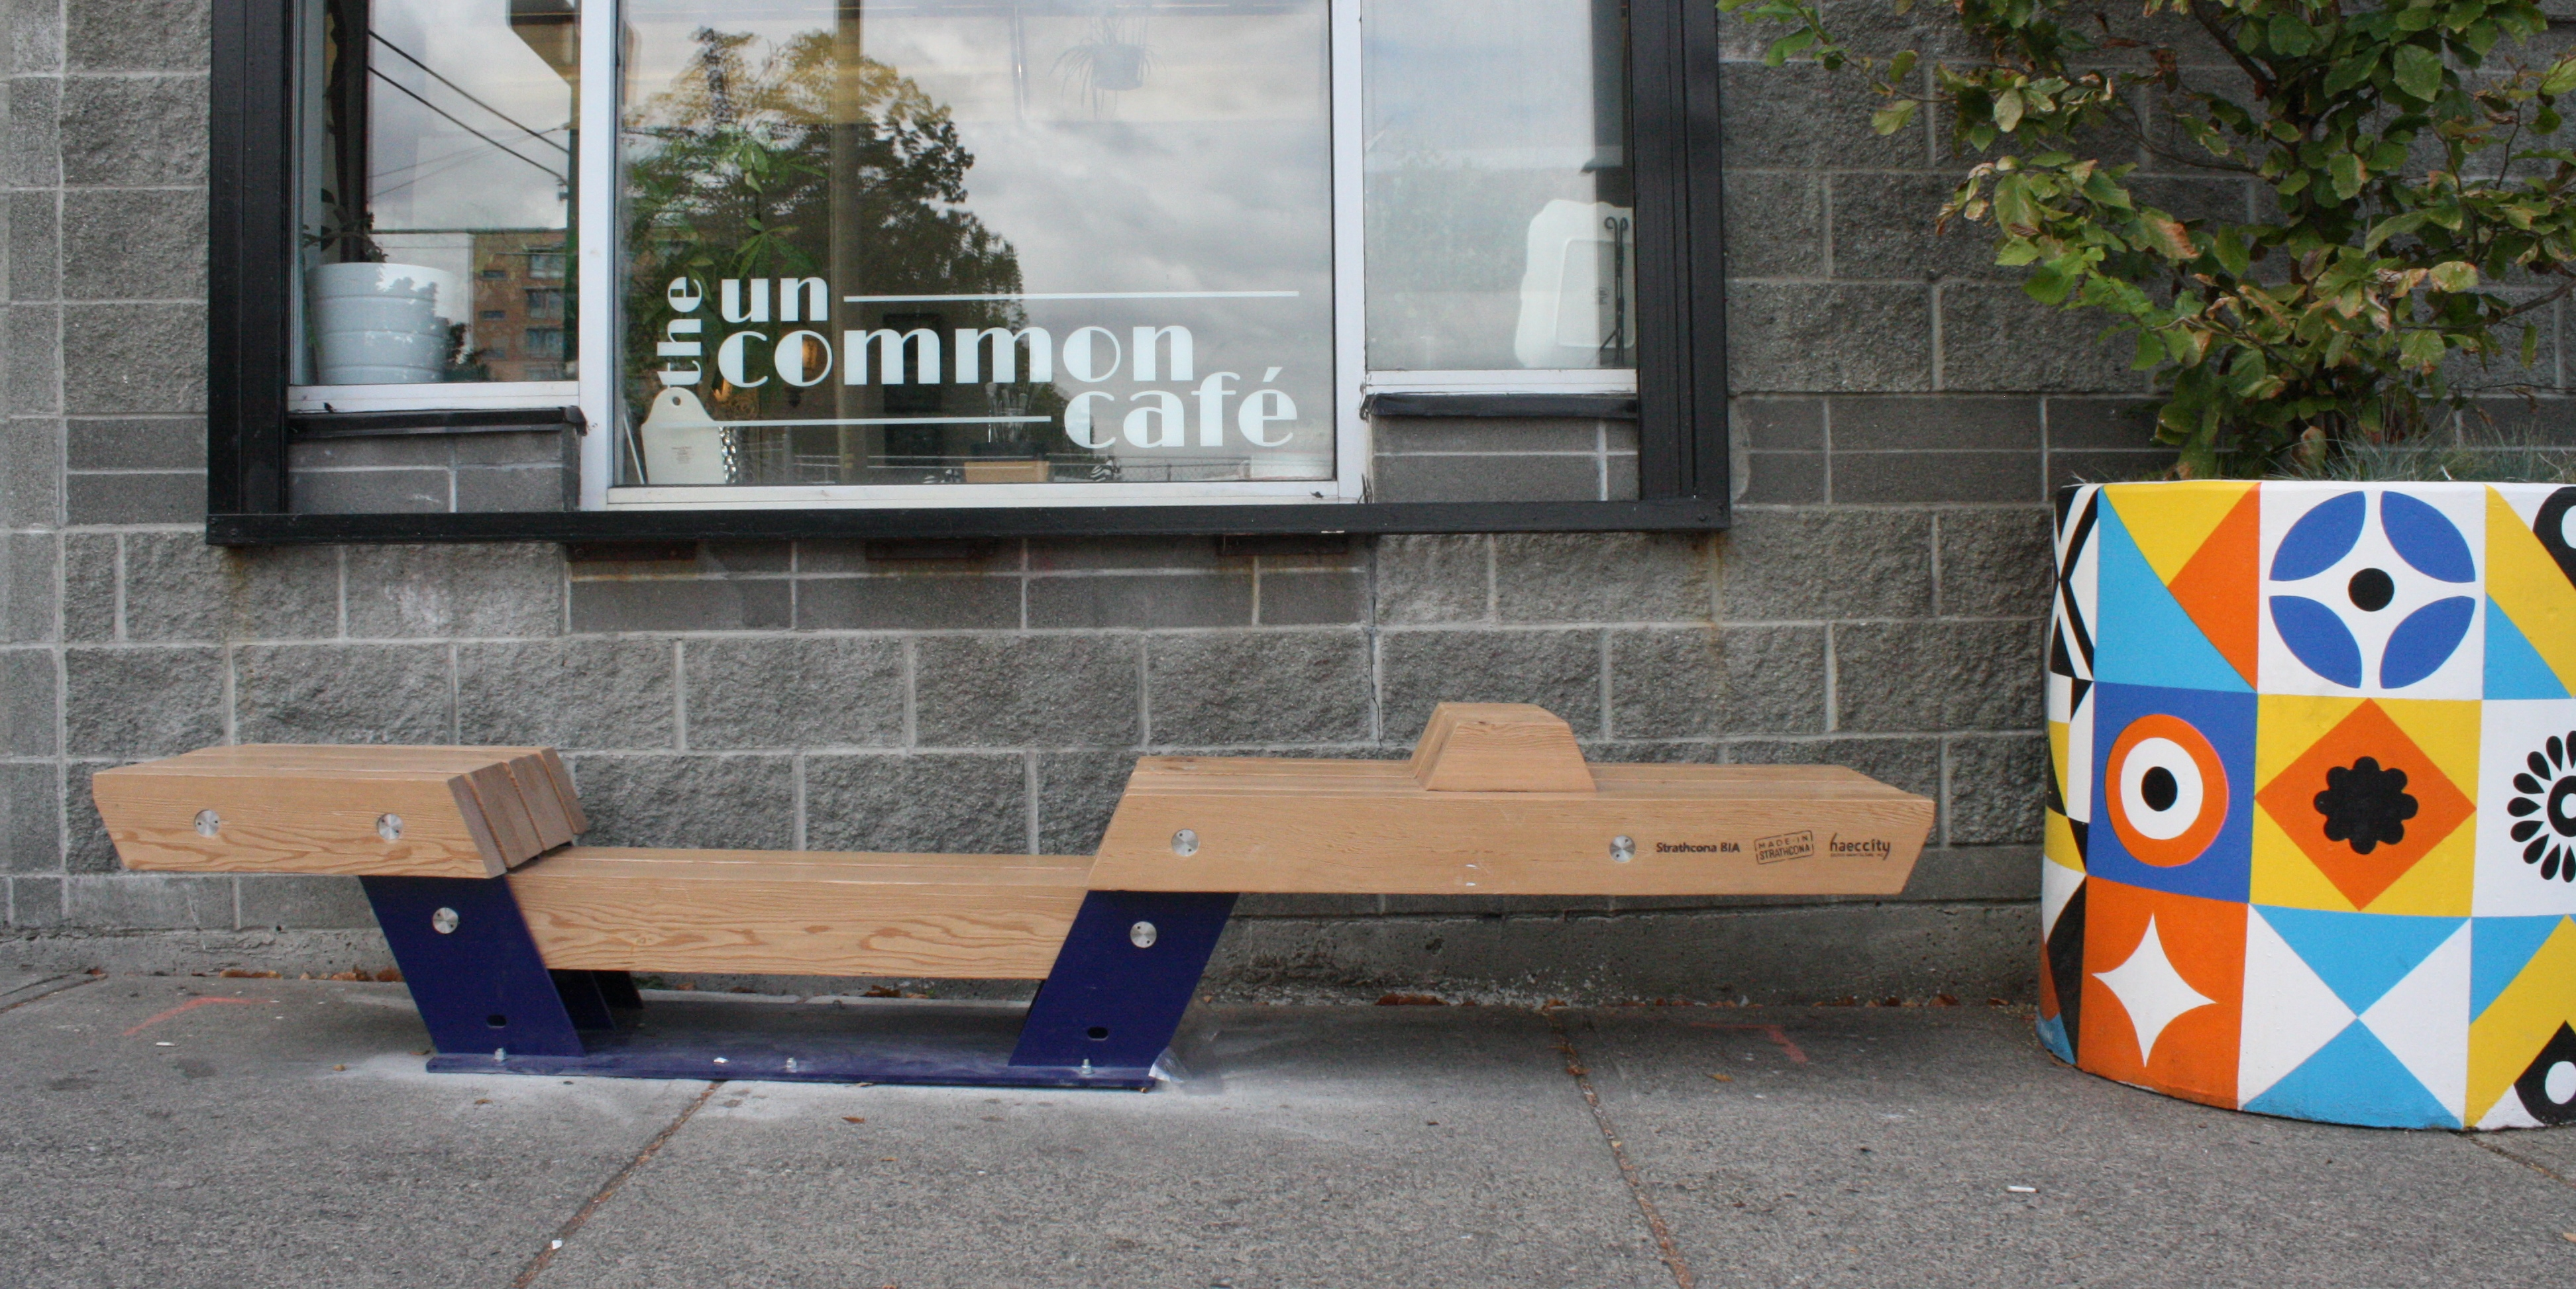 Community Bench at the Uncommon Cafe